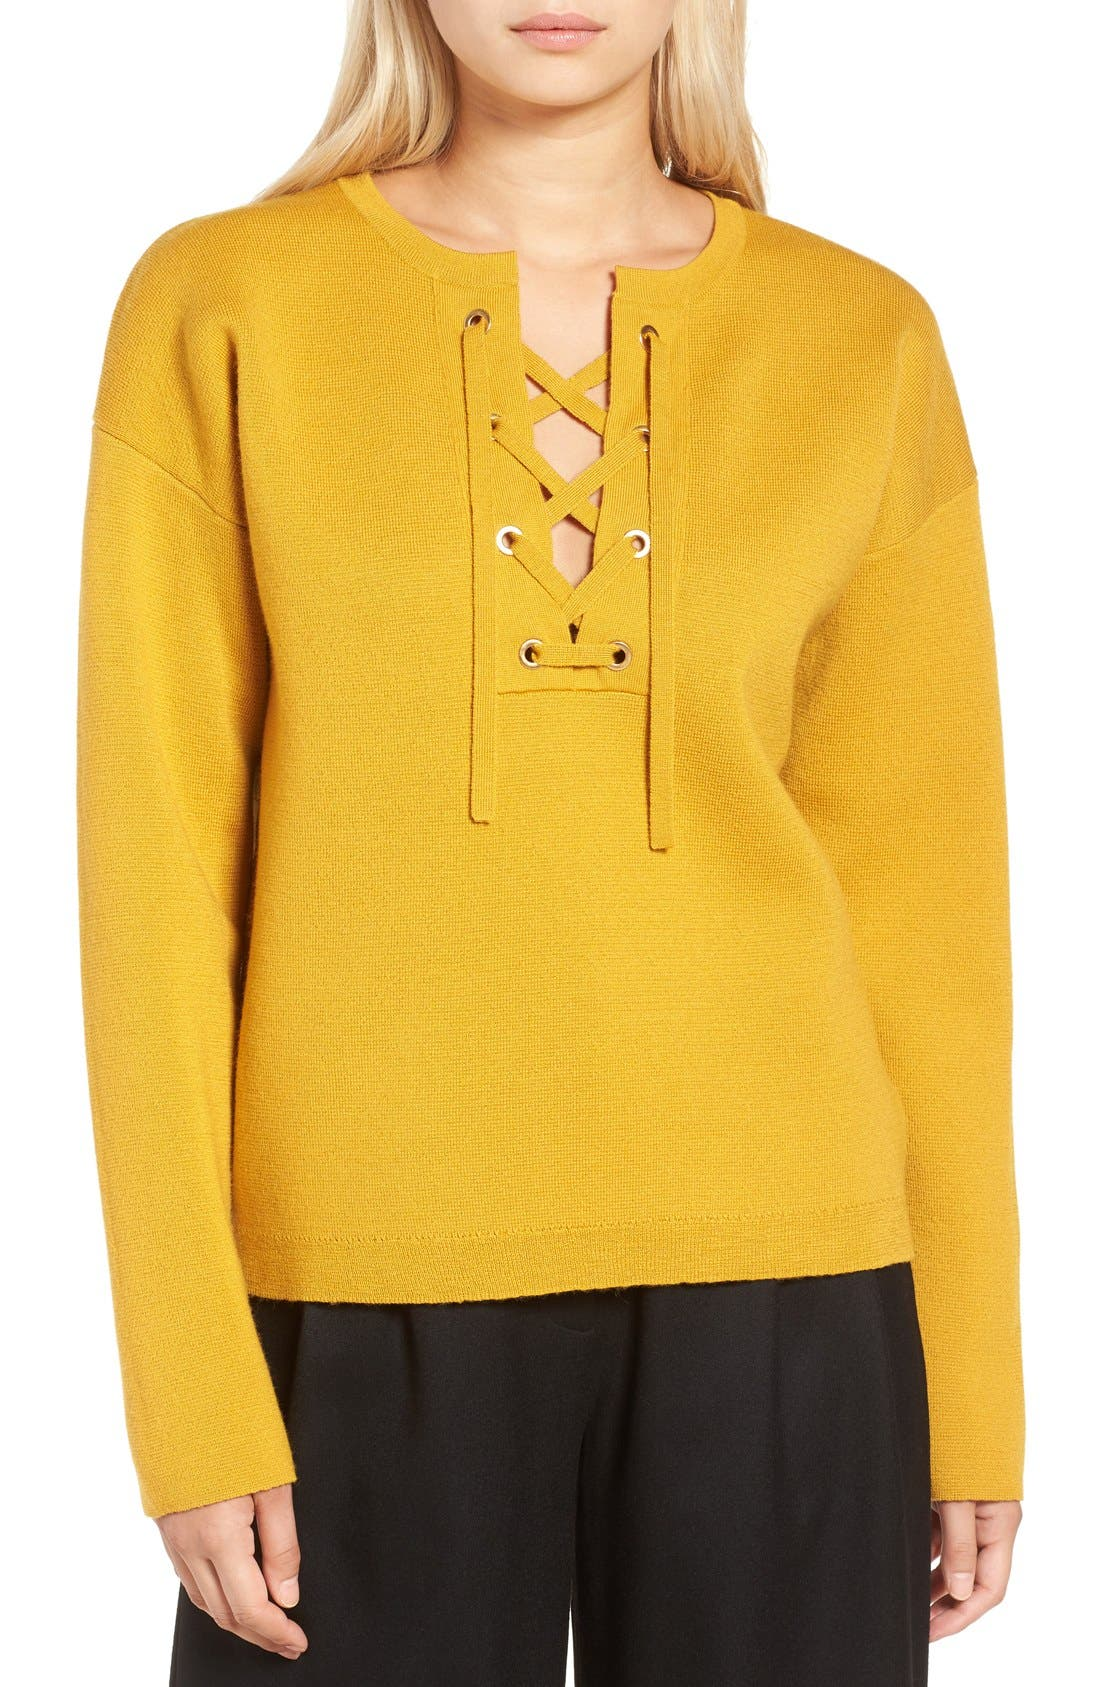 Main Image - J.Crew Collection Bonded Lace-Up Sweater